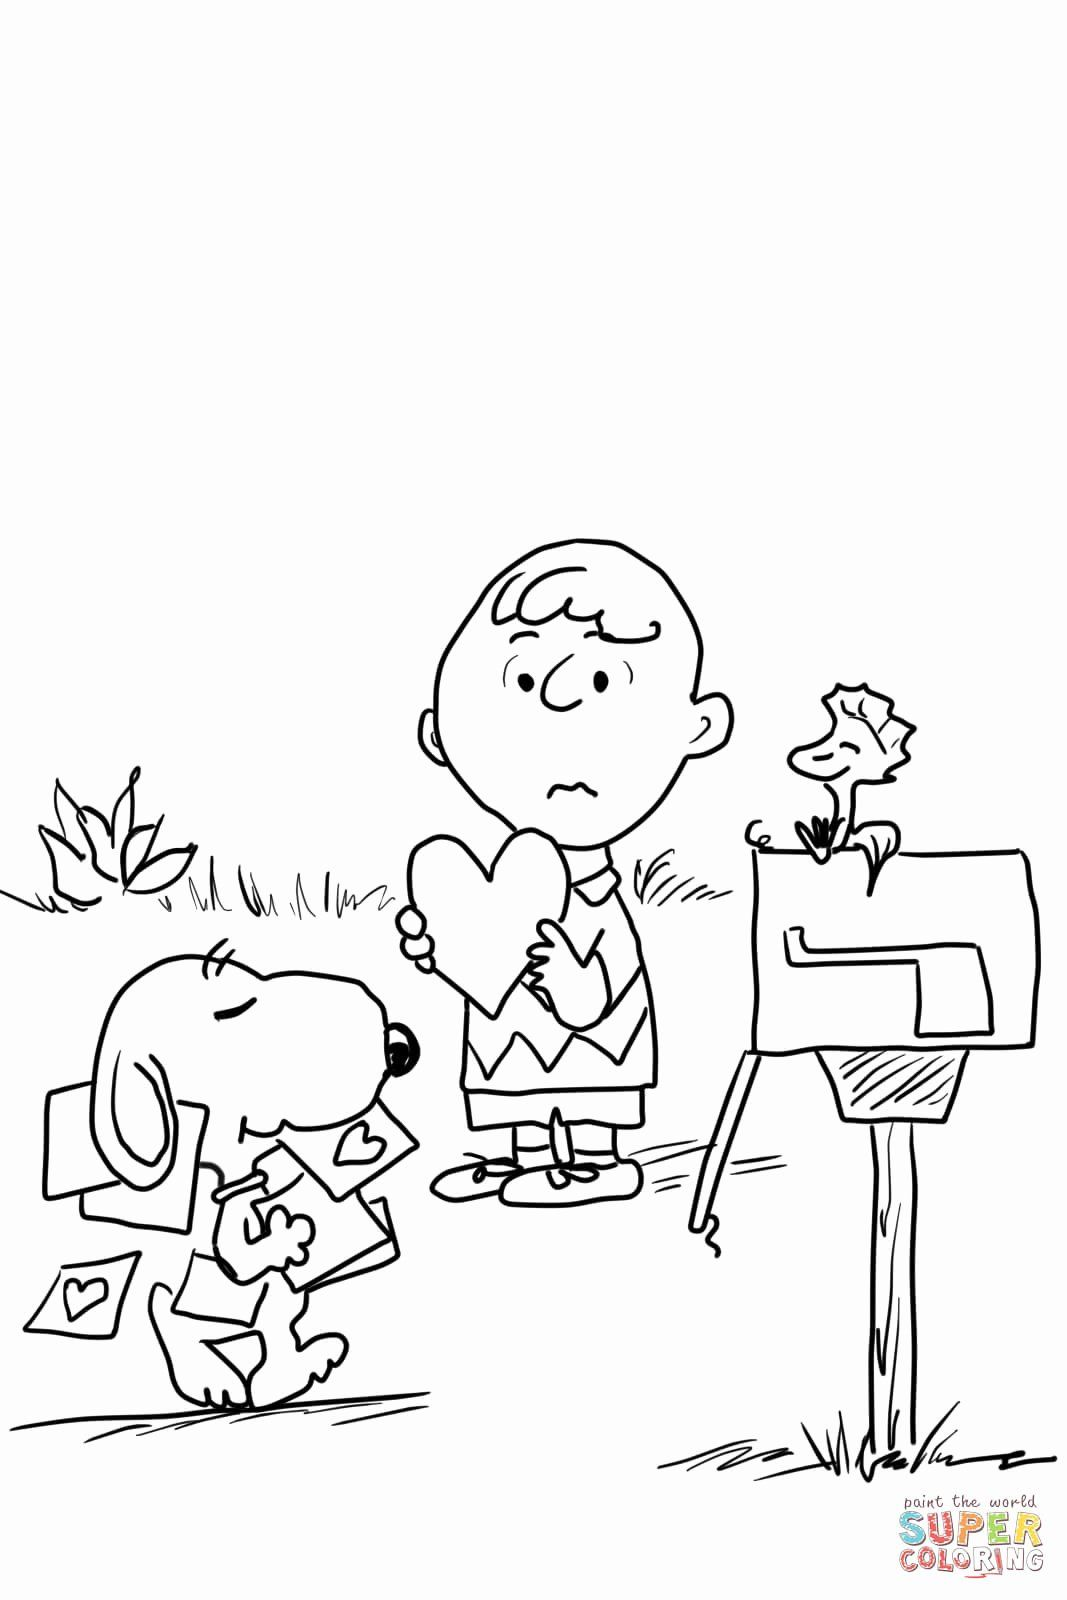 Be My Valentine Coloring Pages Inspirational Coloriage Charlie Brown A La Saint V Valentines Day Coloring Page Valentine Coloring Pages Valentines Day Coloring